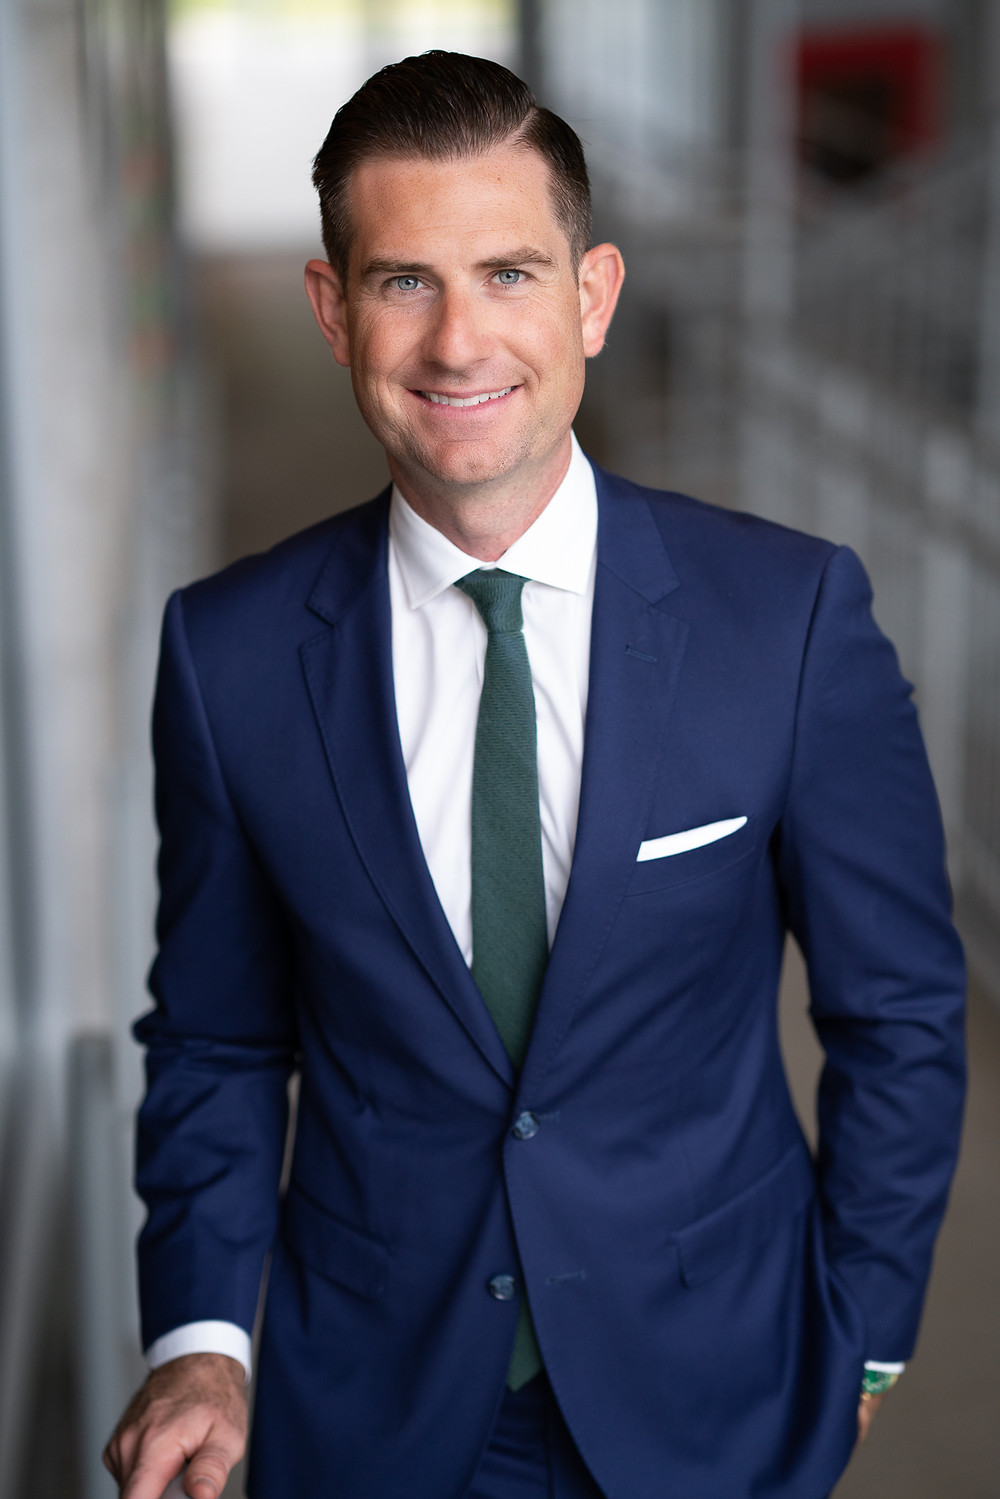 A man wearing a suit and tie poses for his professional headshot